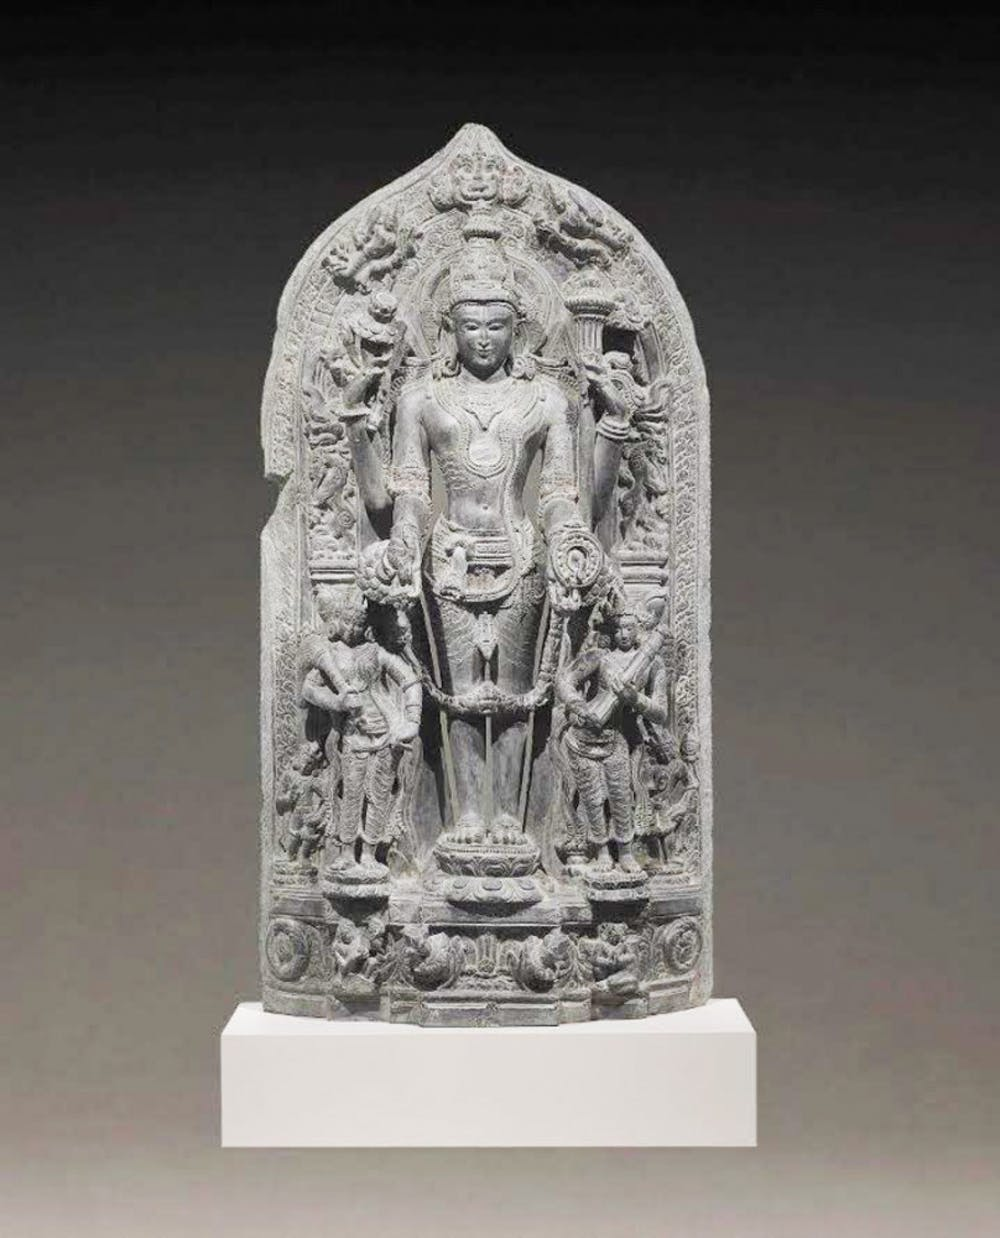 """<p dir=""""ltr""""><span>The Samuel P. Harn Museum of Art paid $75,000 to Subhash Kapoor, an art dealer currently on trial for an international art smuggling racket, for The Stele of Vishnu Trivikrama in 1999. Homeland Security Investigations took the statue from the Harn last week to return it back to its origin in India after evidence of it being stolen.</span></p><p><span id=""""docs-internal-guid-91157ced-ae72-a208-bff6-afe61ec3986e""""><span>Courtesy to the Alligator</span></span></p>"""